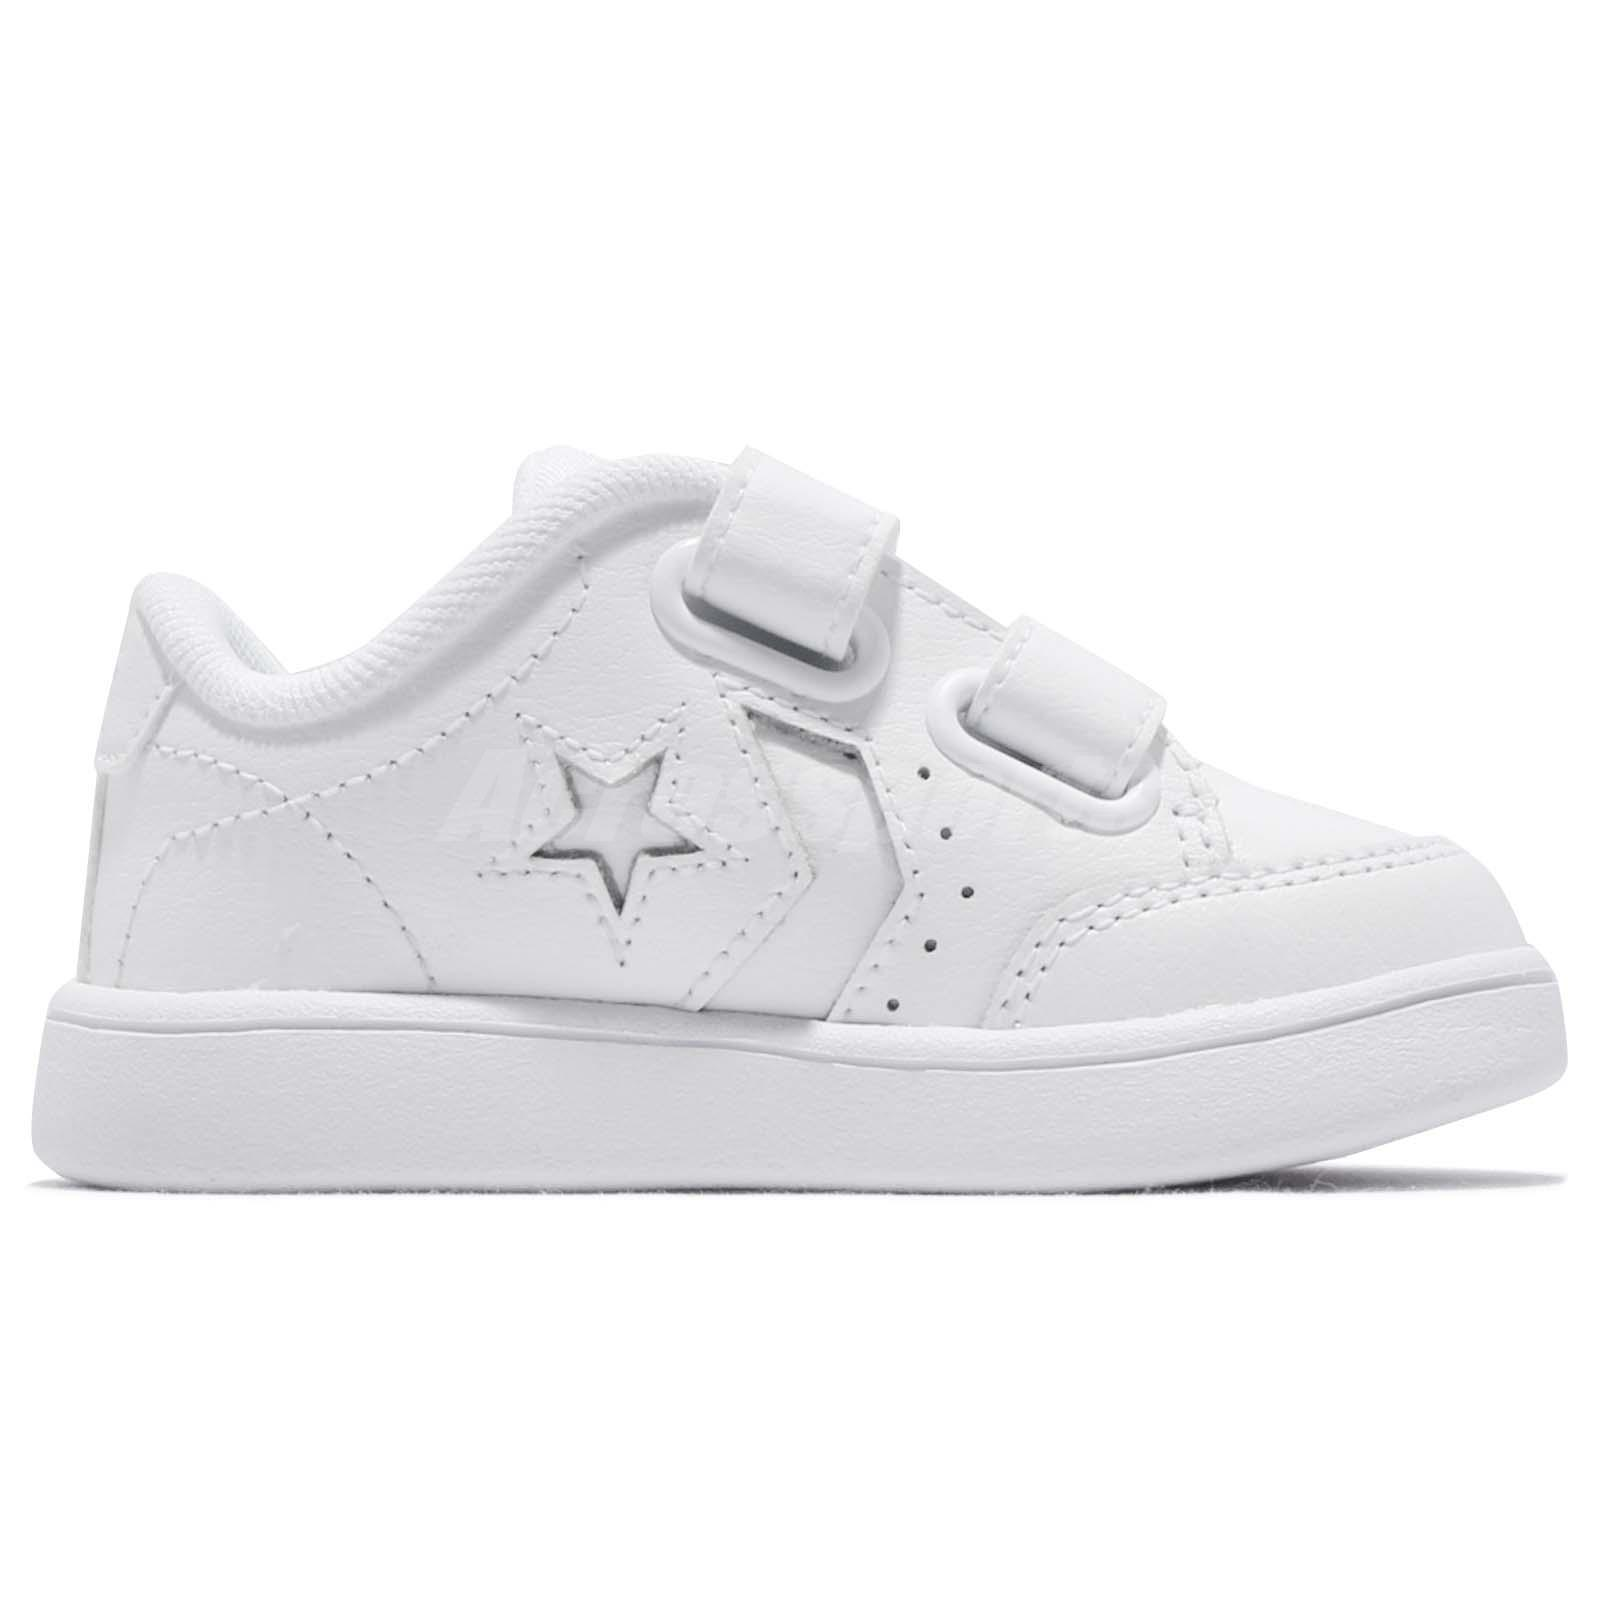 3e9cc72095e Converse Star Court 2V Straps White Toddler Infant Baby Shoes ...